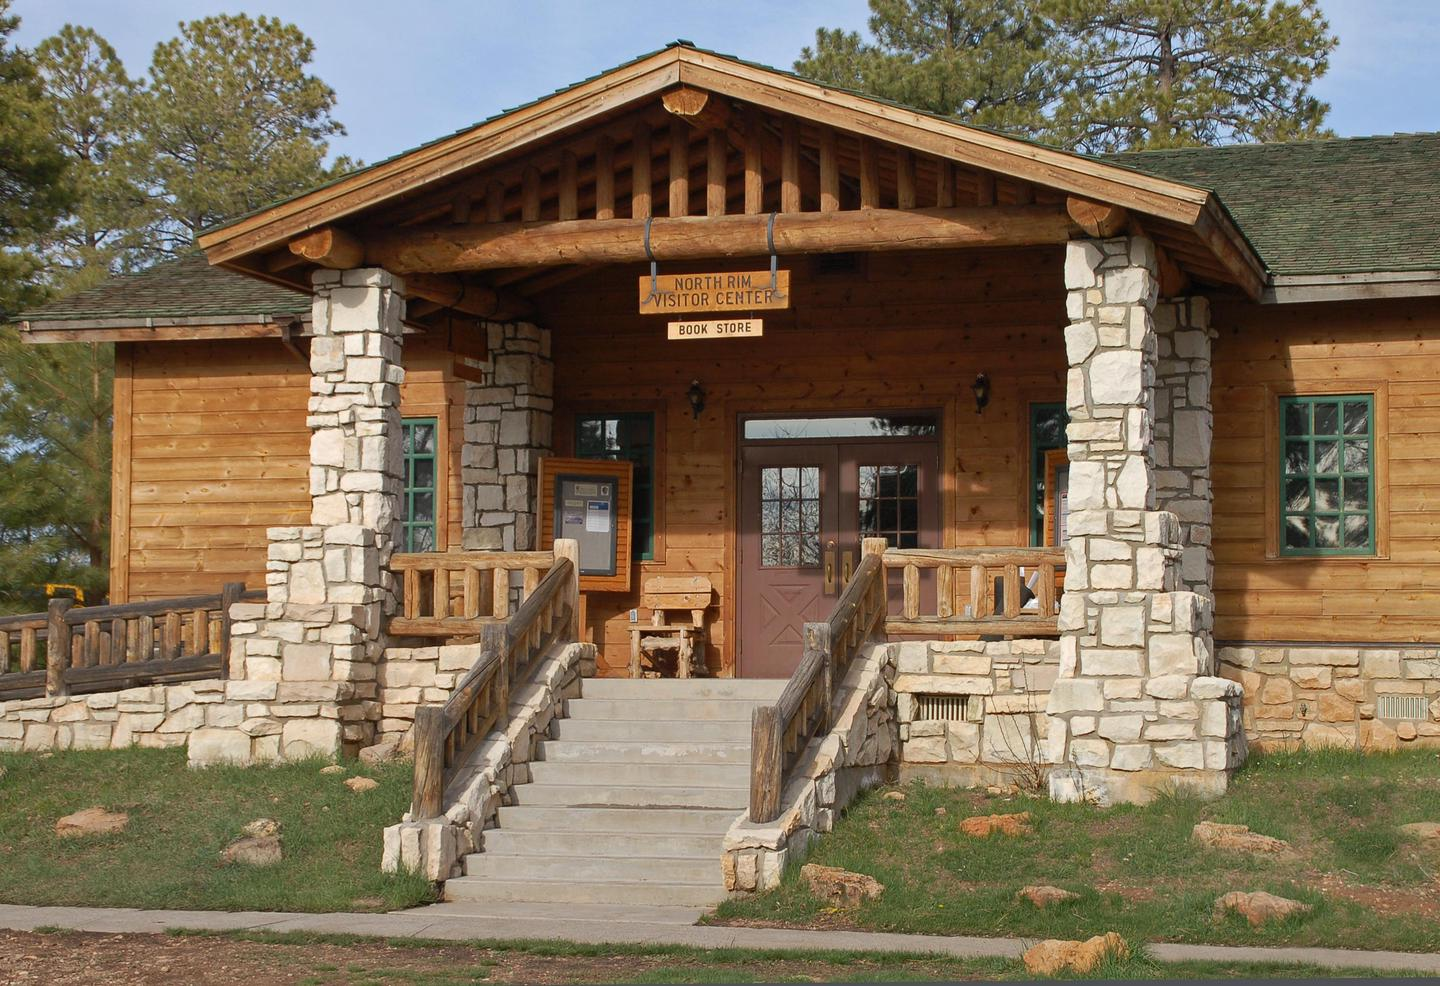 Grand Canyon National Park: North Rim Visitor Center 0116Located adjacent to the parking lot on Bright Angel Peninsula, by the Grand Canyon Lodge. The North Rim Visitor Center has park and regional information, maps, brochures, exhibits, and a bookstore. Open mid-May to mid-October, from 8:00 a.m. to 6:00 p.m.